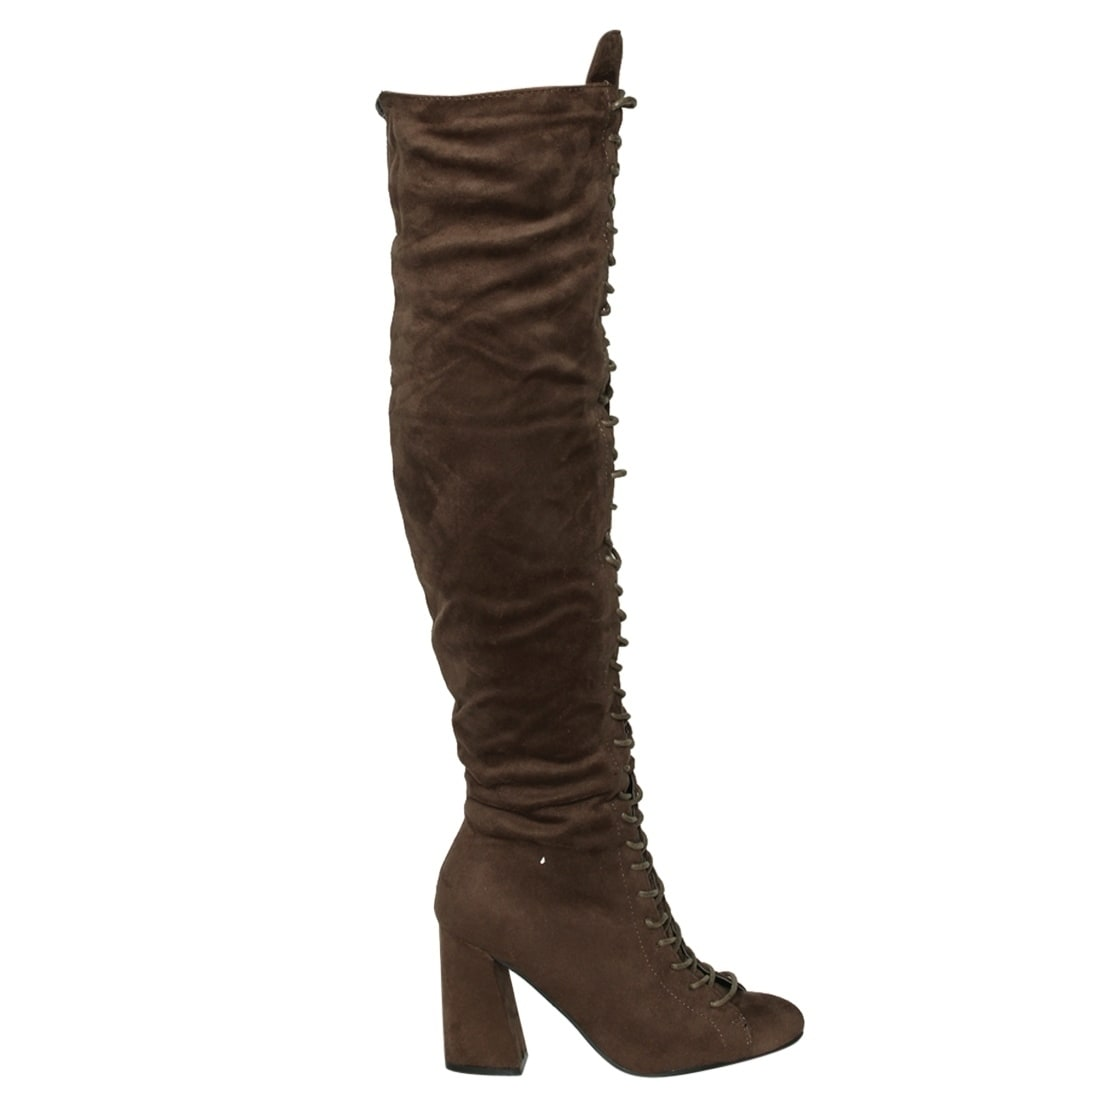 Beston EJ60 Women's Over The Knee High Combat Boots Half Size Small - Free  Shipping On Orders Over $45 - Overstock.com - 24252095